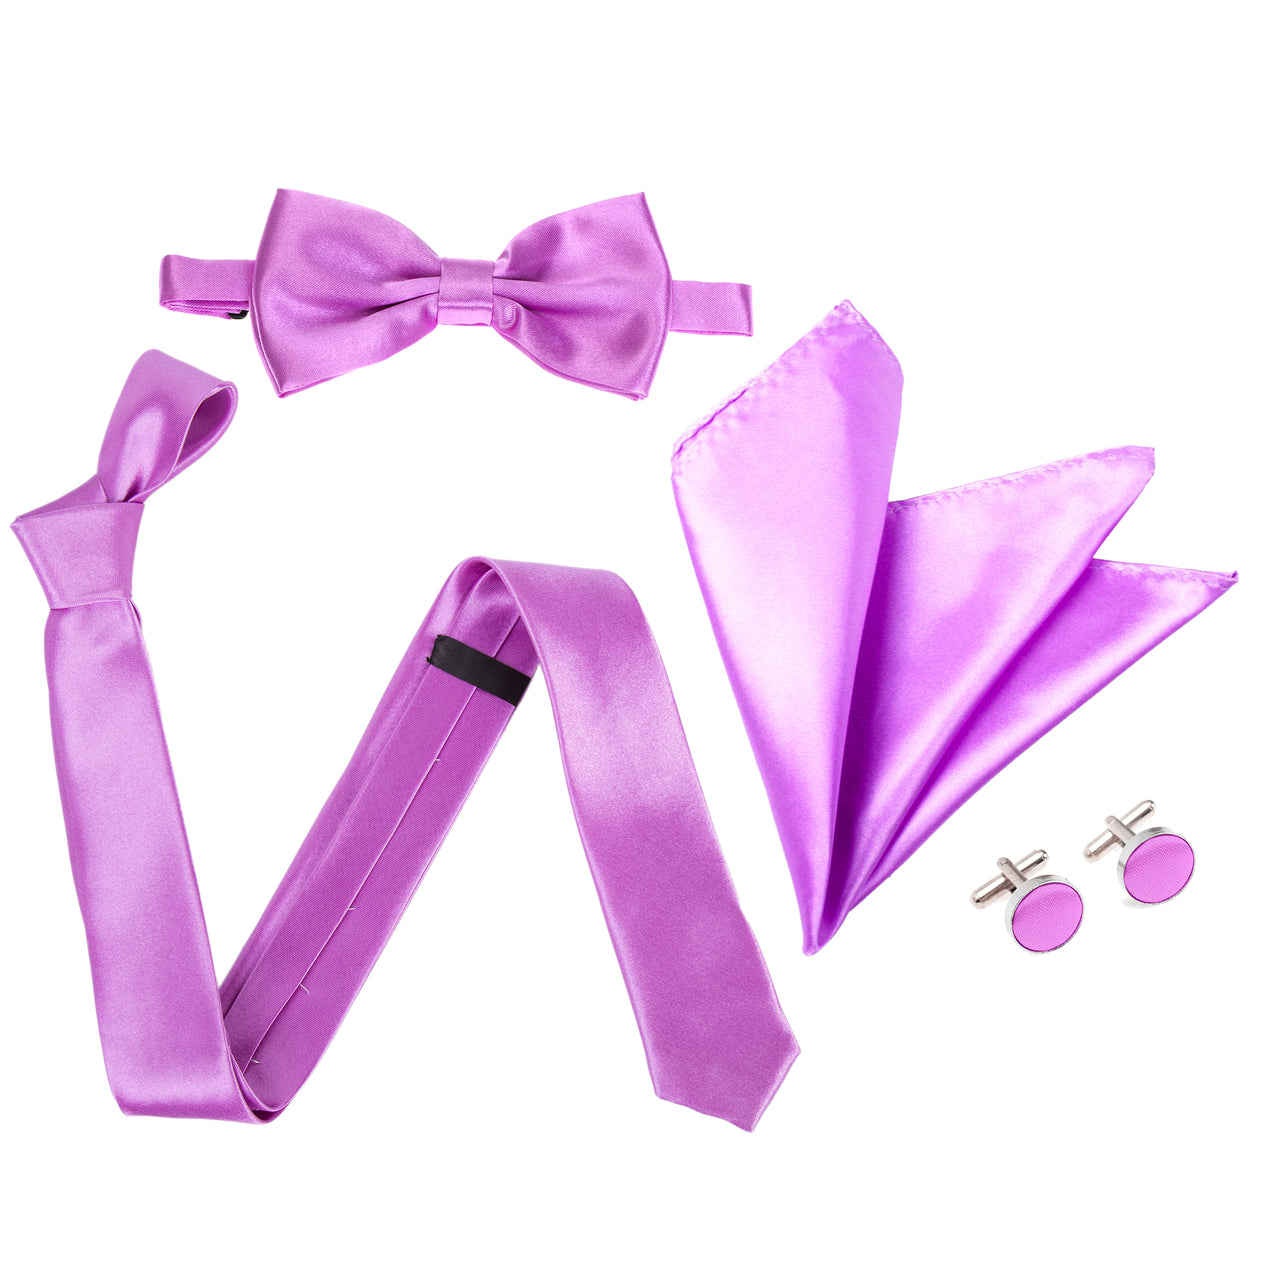 "4pc Tie Set: Slim 2"" Tie, Bow Tie, Handkerchief & Cufflinks - Light Purple"